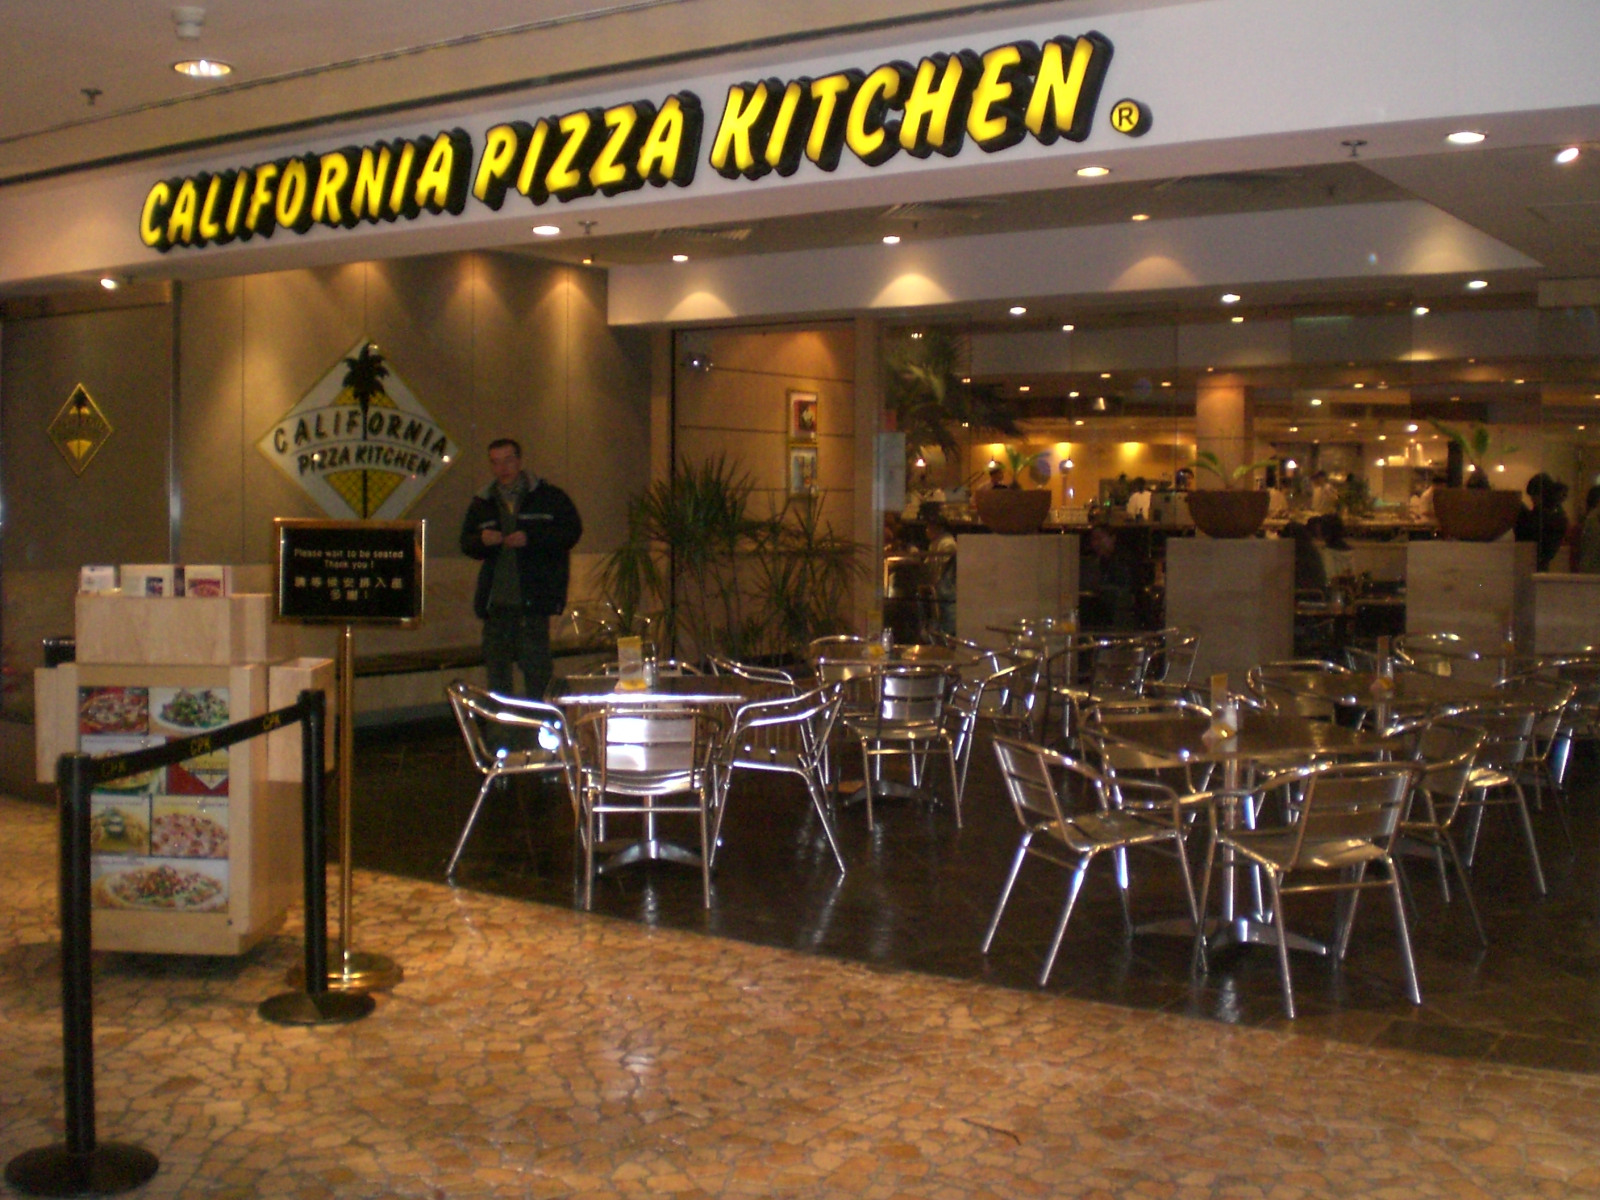 California Pizza Kitchen Australia